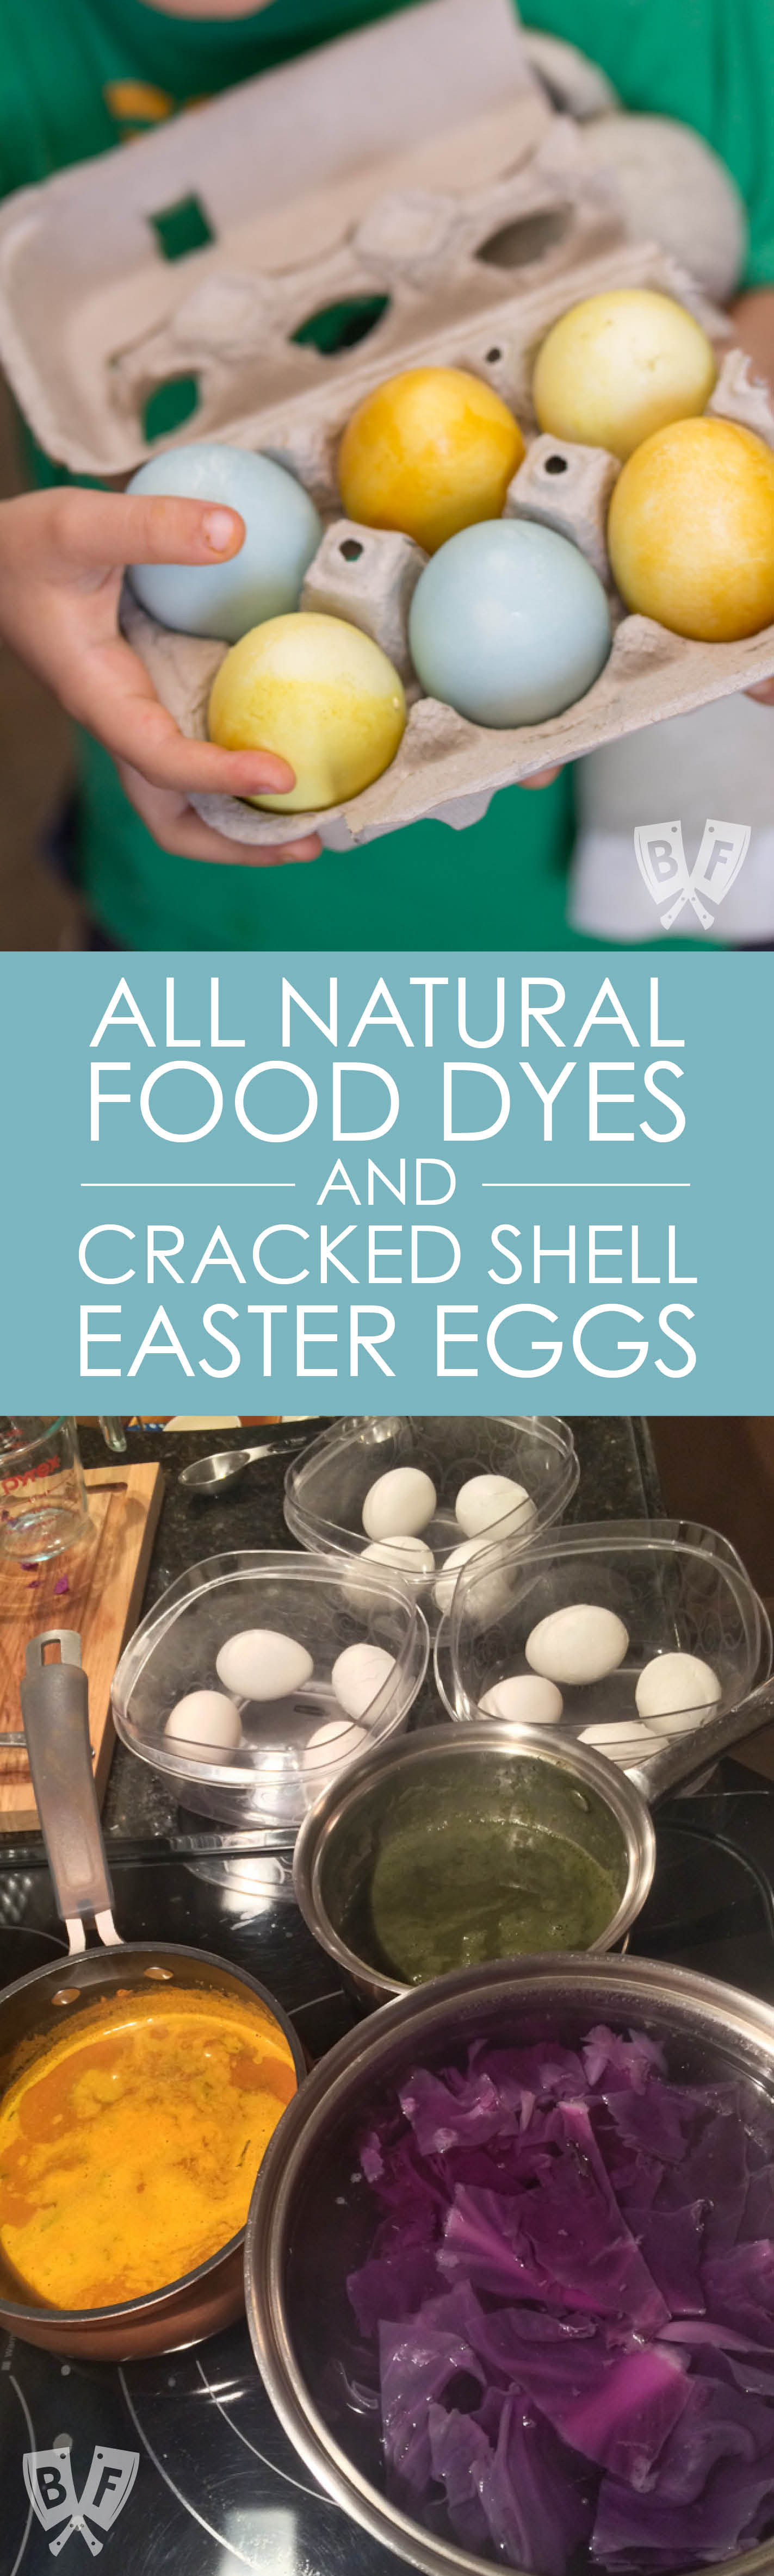 Ditch the store-bought egg dye kits this Easter and make your own with ingredients found in your kitchen. A fun experiment for kids!